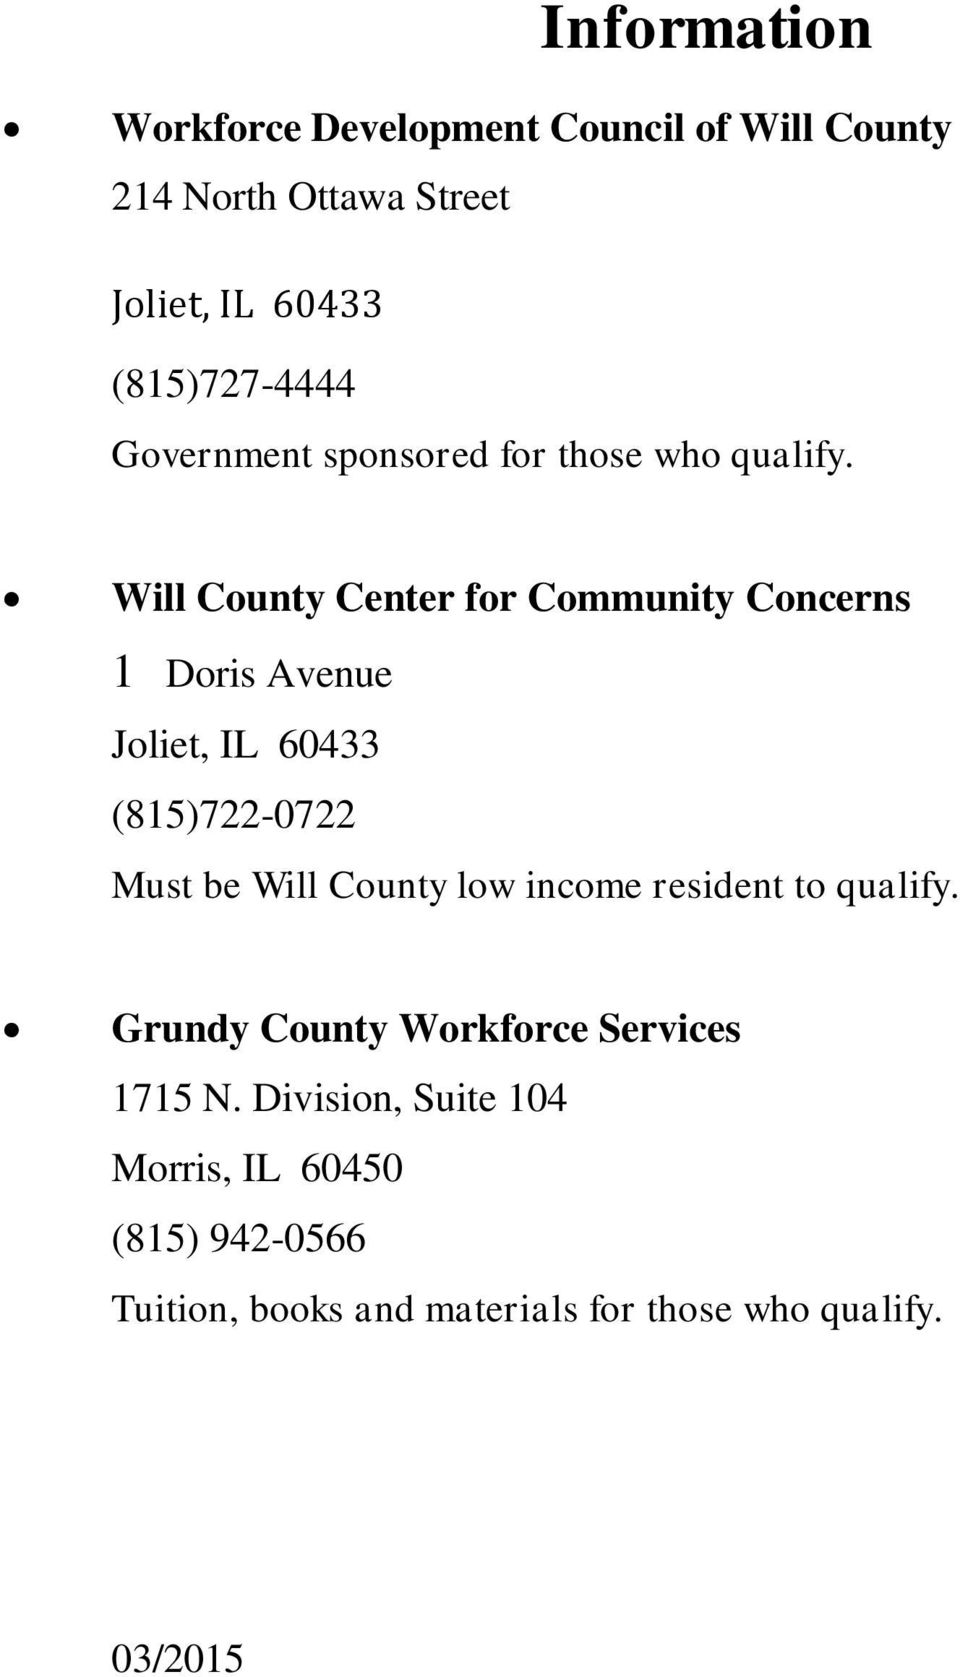 Will County Center for Community Concerns 1 Doris Avenue Joliet, IL 60433 (815)722-0722 Must be Will County low